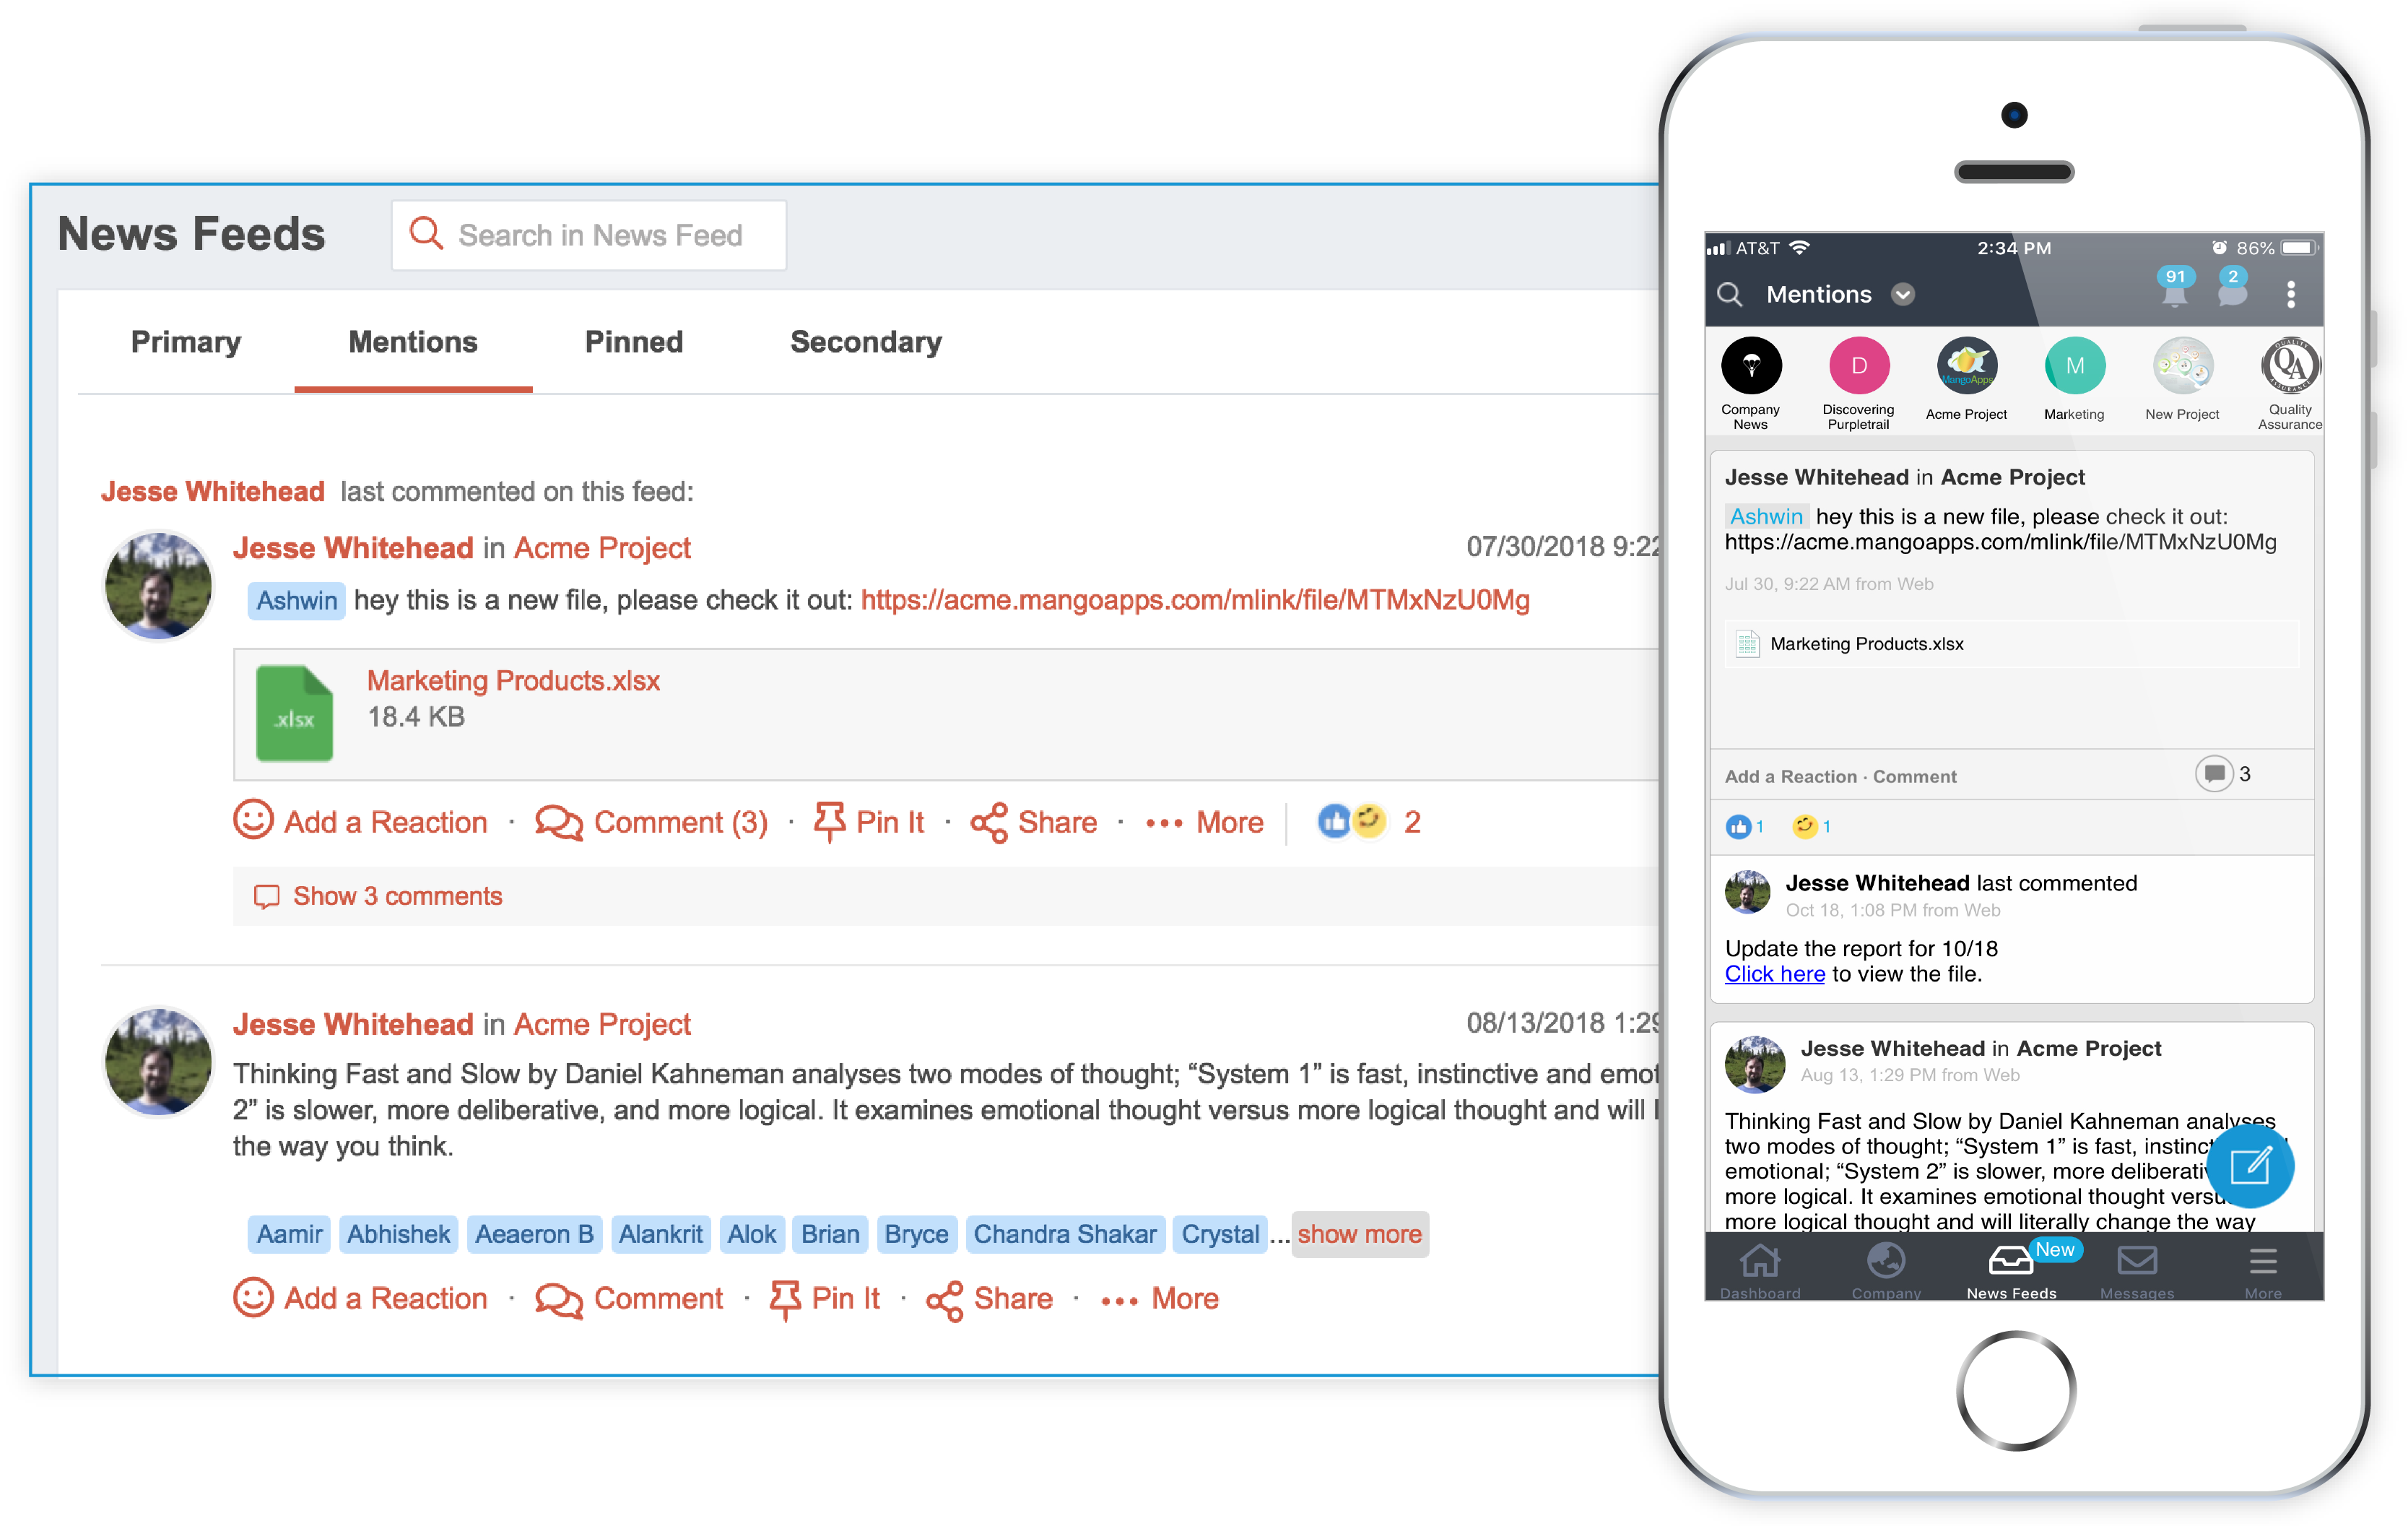 News Feed and More For Mobile Employees